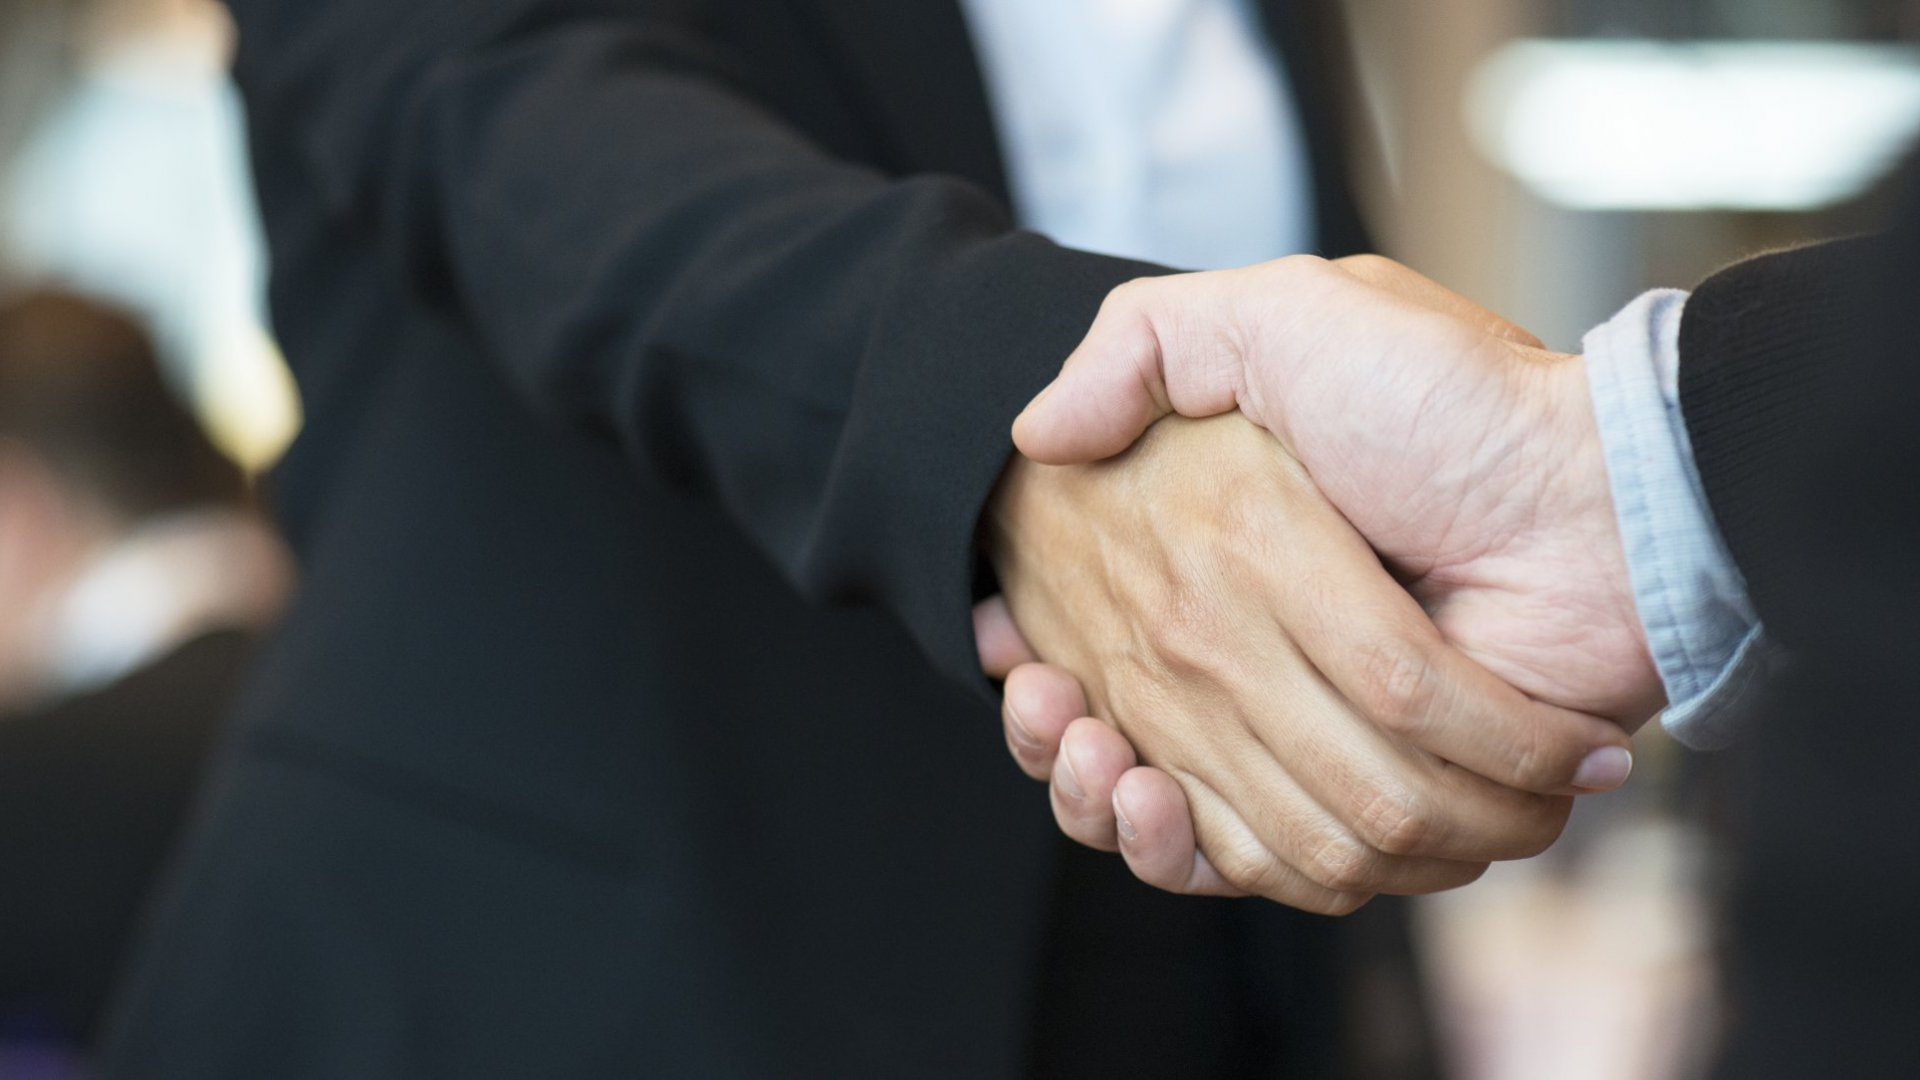 Super Salespeople Use TACT to Build Relationships